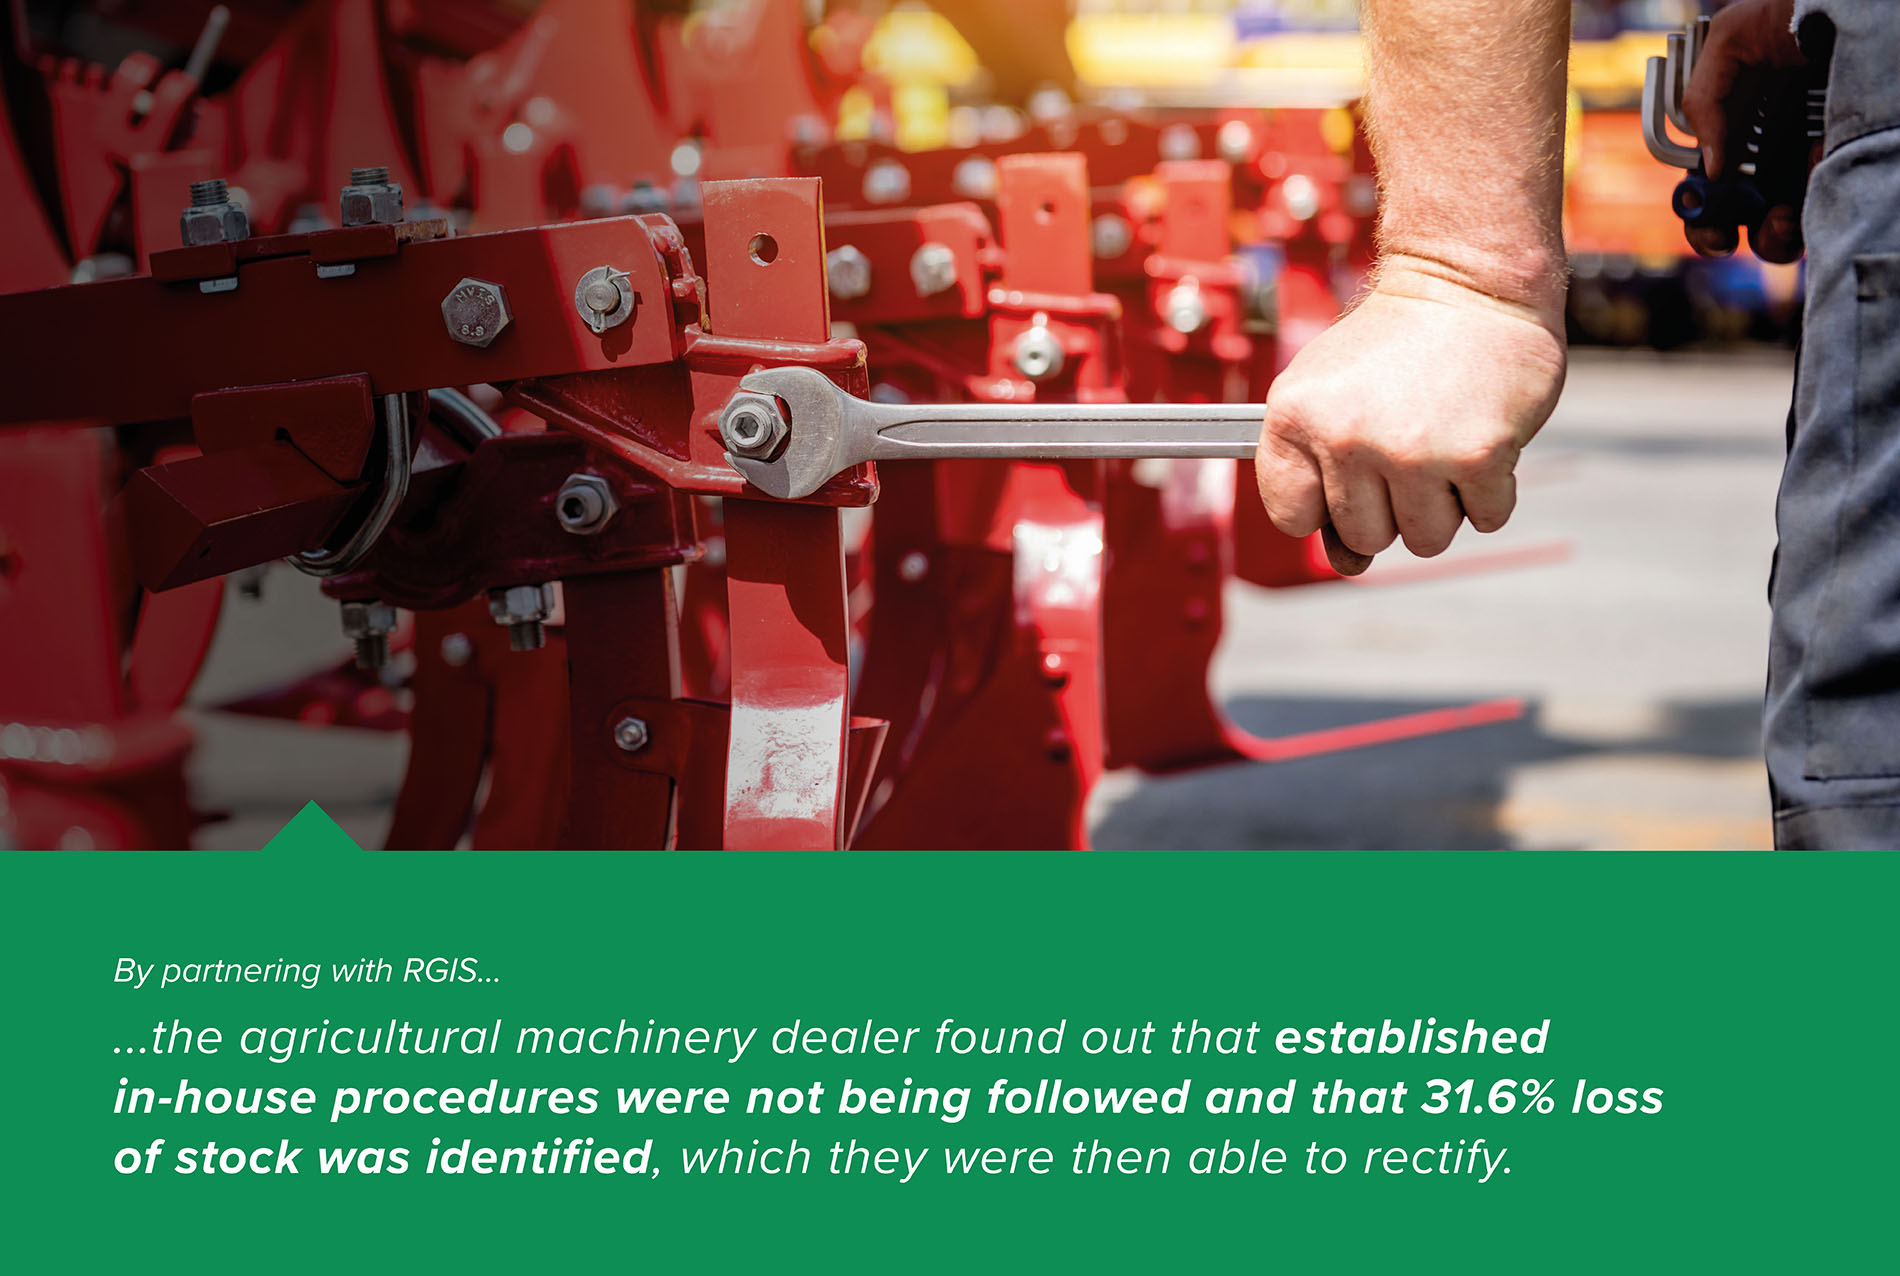 Inventory Management Solution for Agricultural Machinery Dealer